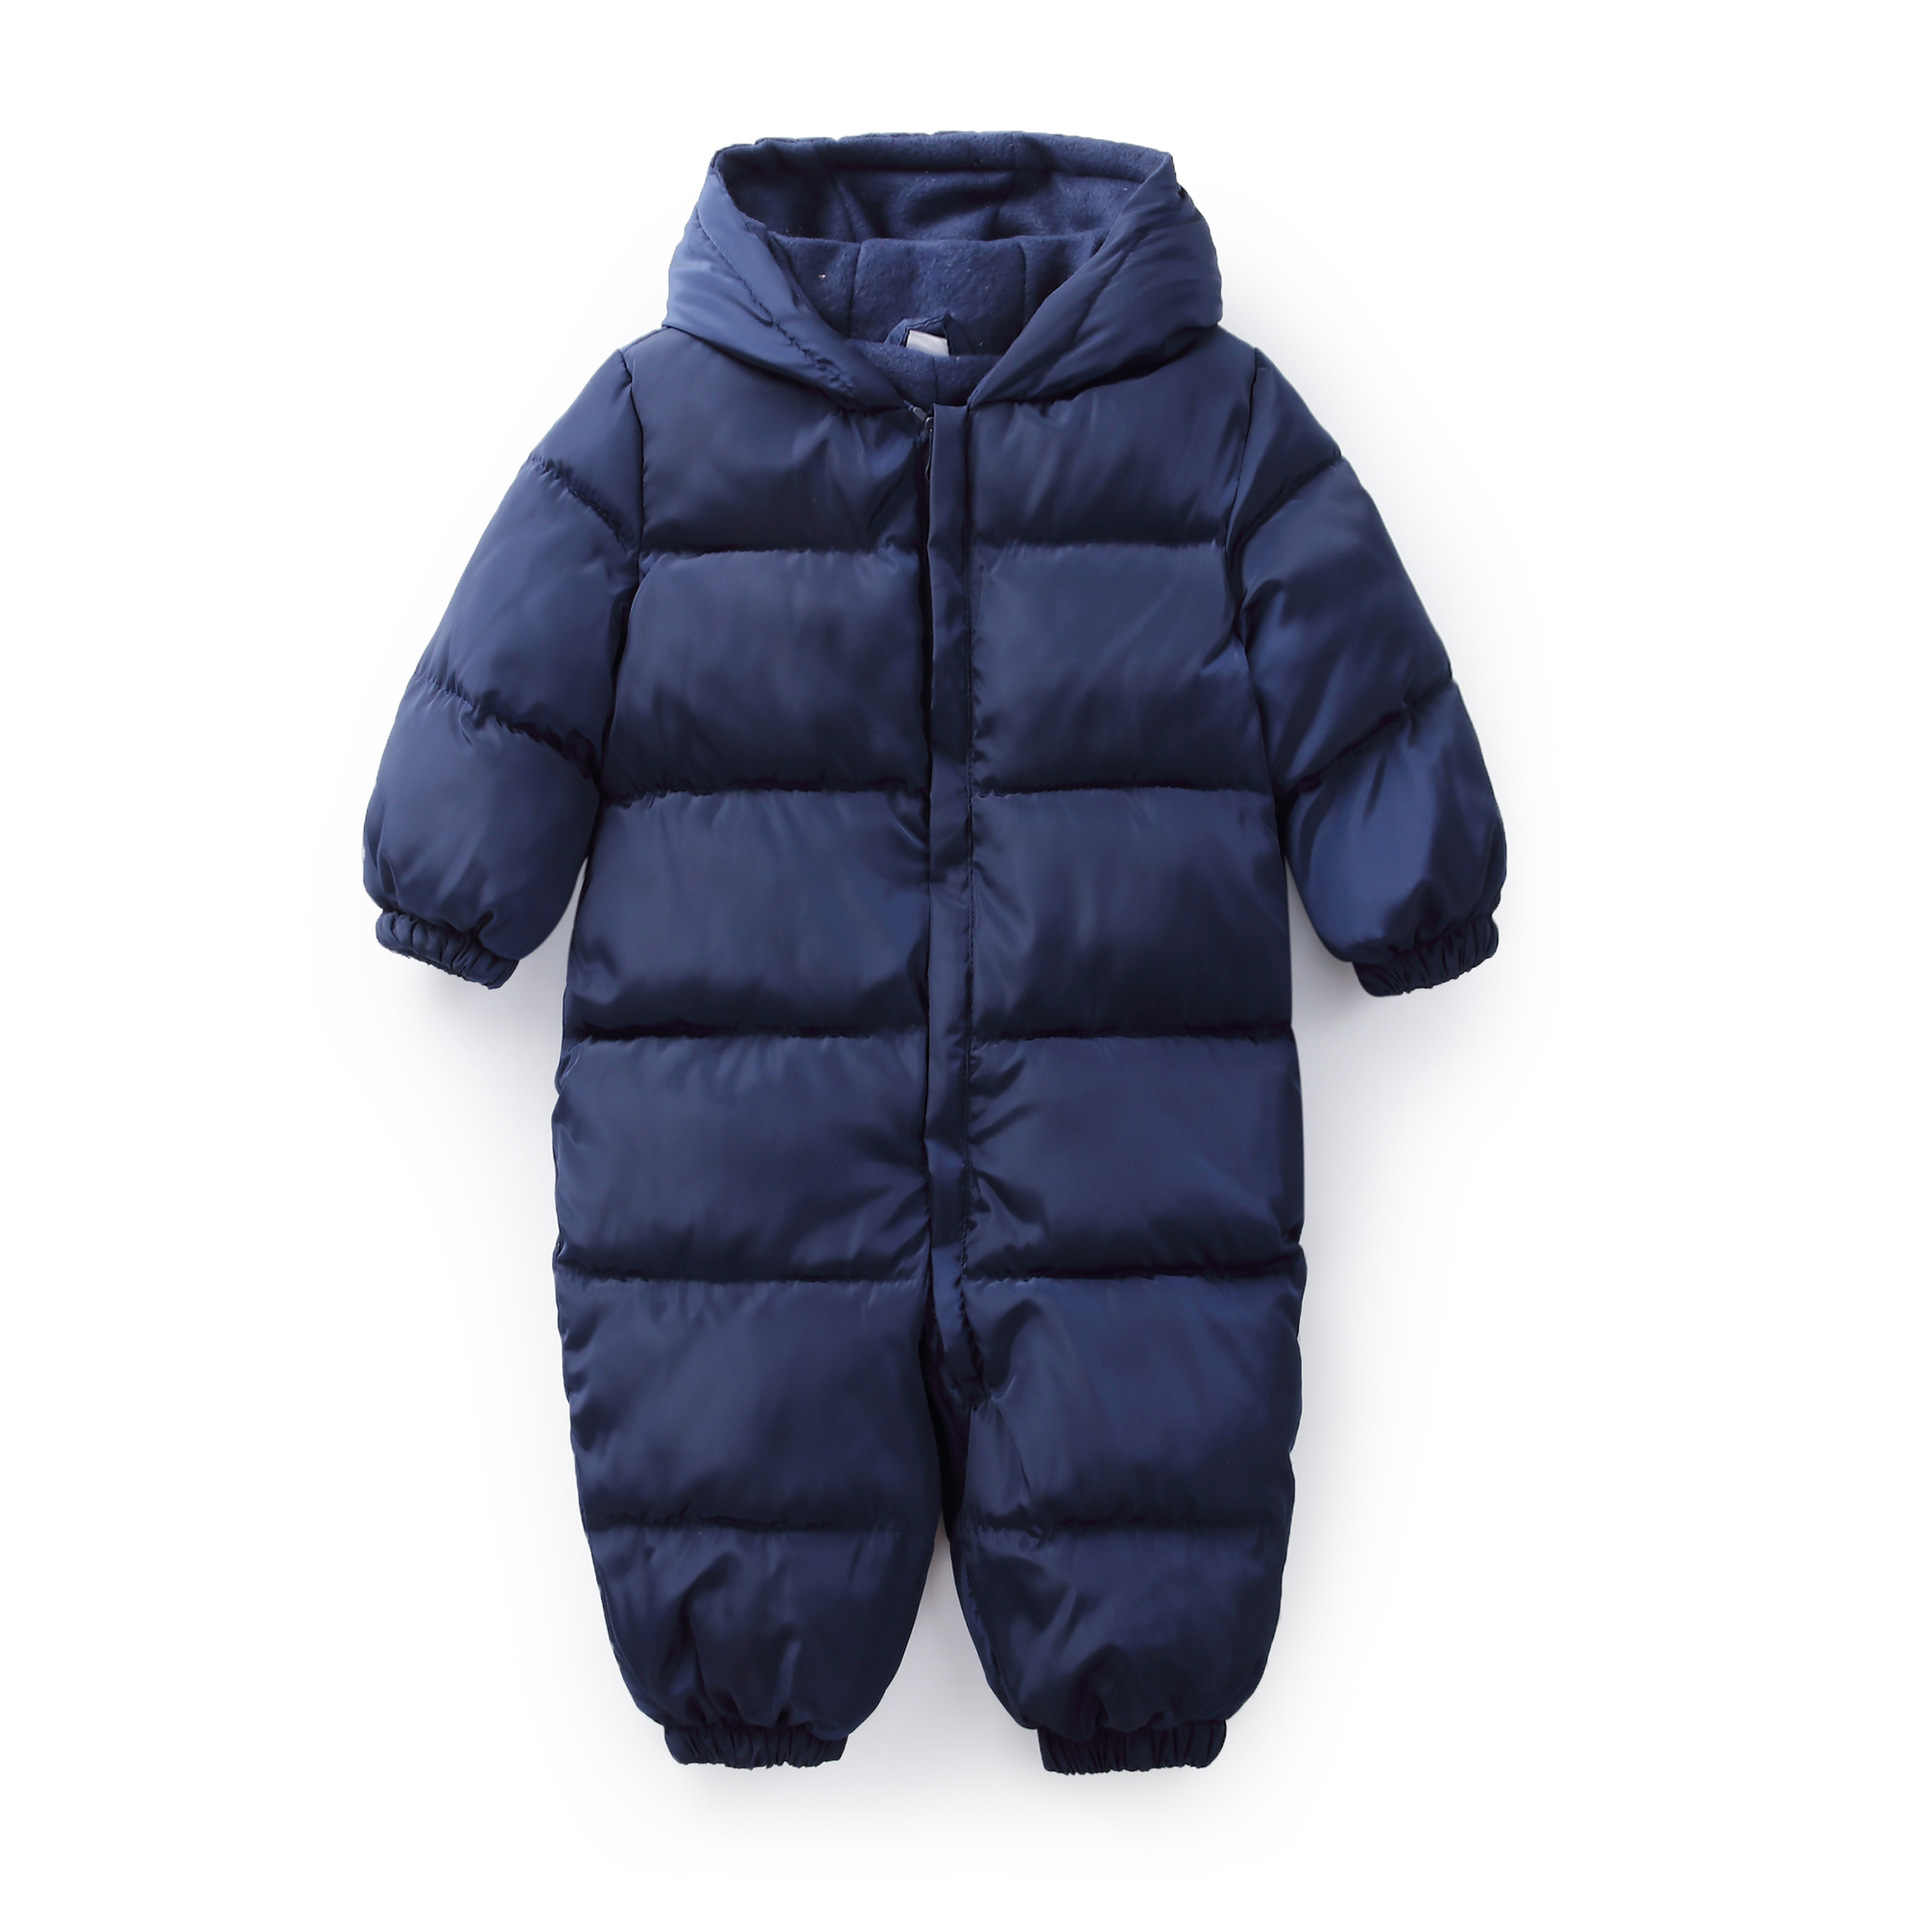 Winter Newborn Baby Clothes Jumpsuit Camouflage Warm Boys Snowsuit For Girls Hooded Overalls For Children Unisex Baby Romper